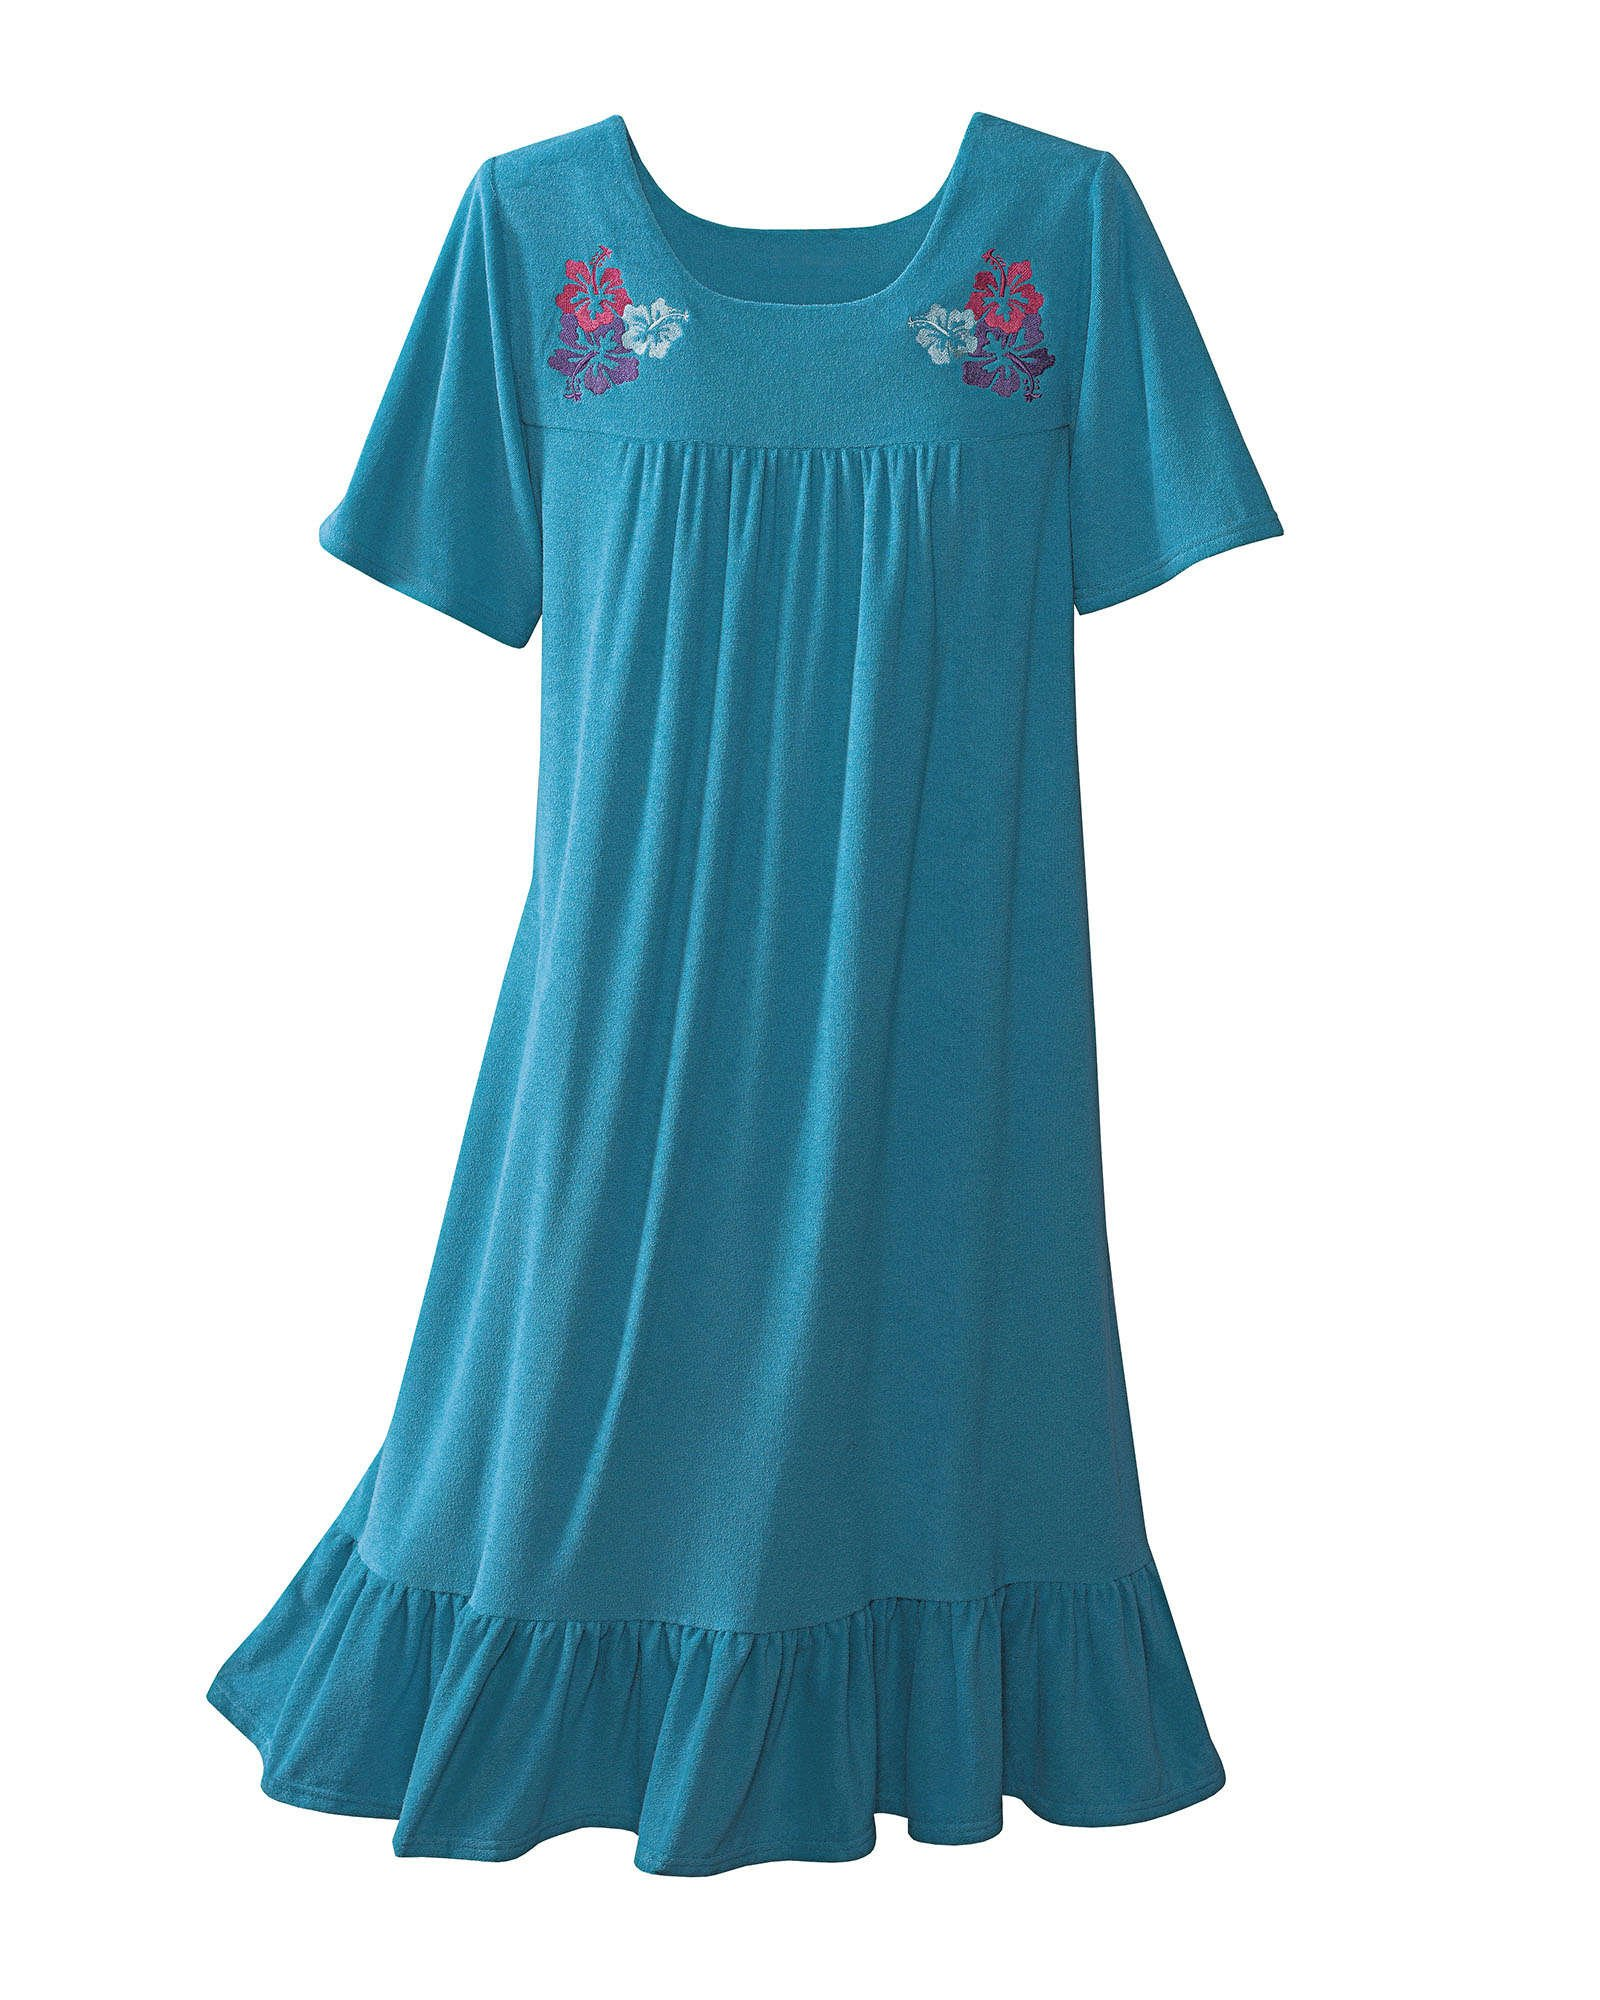 Available at Amazon: National Terry Lounge Dress